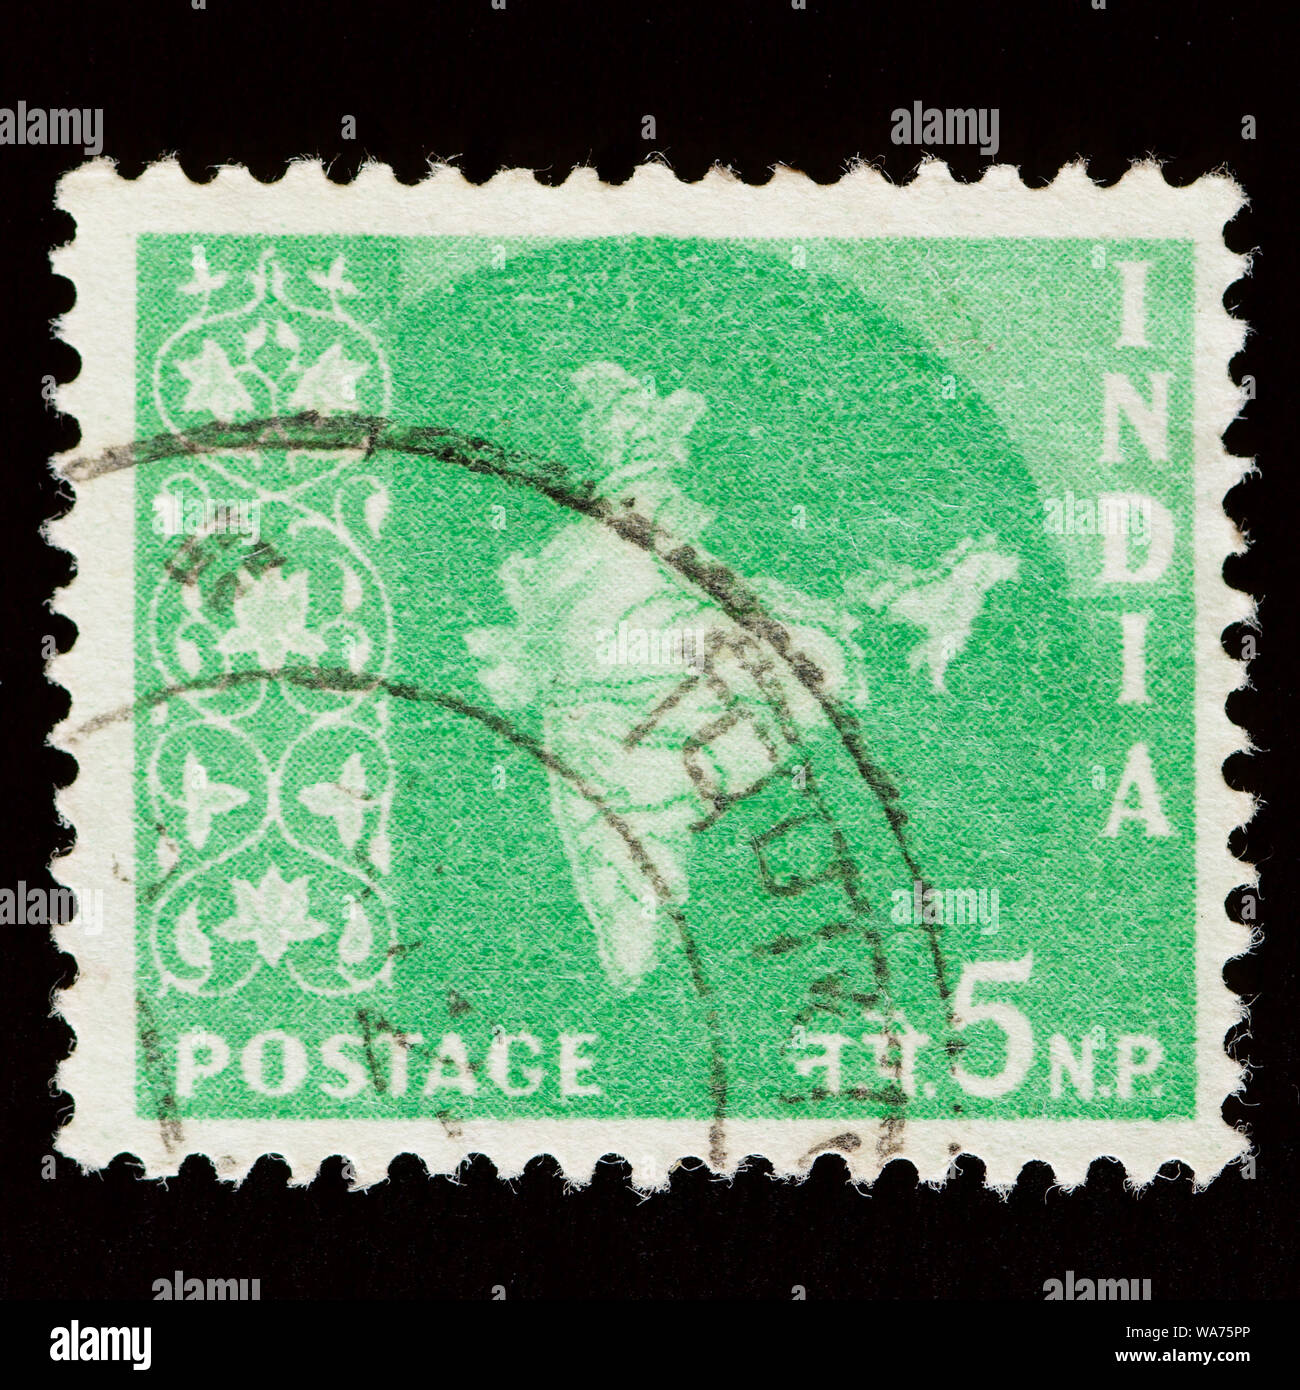 India Postage Stamp - Map of India - 1st Issue (1957-1958